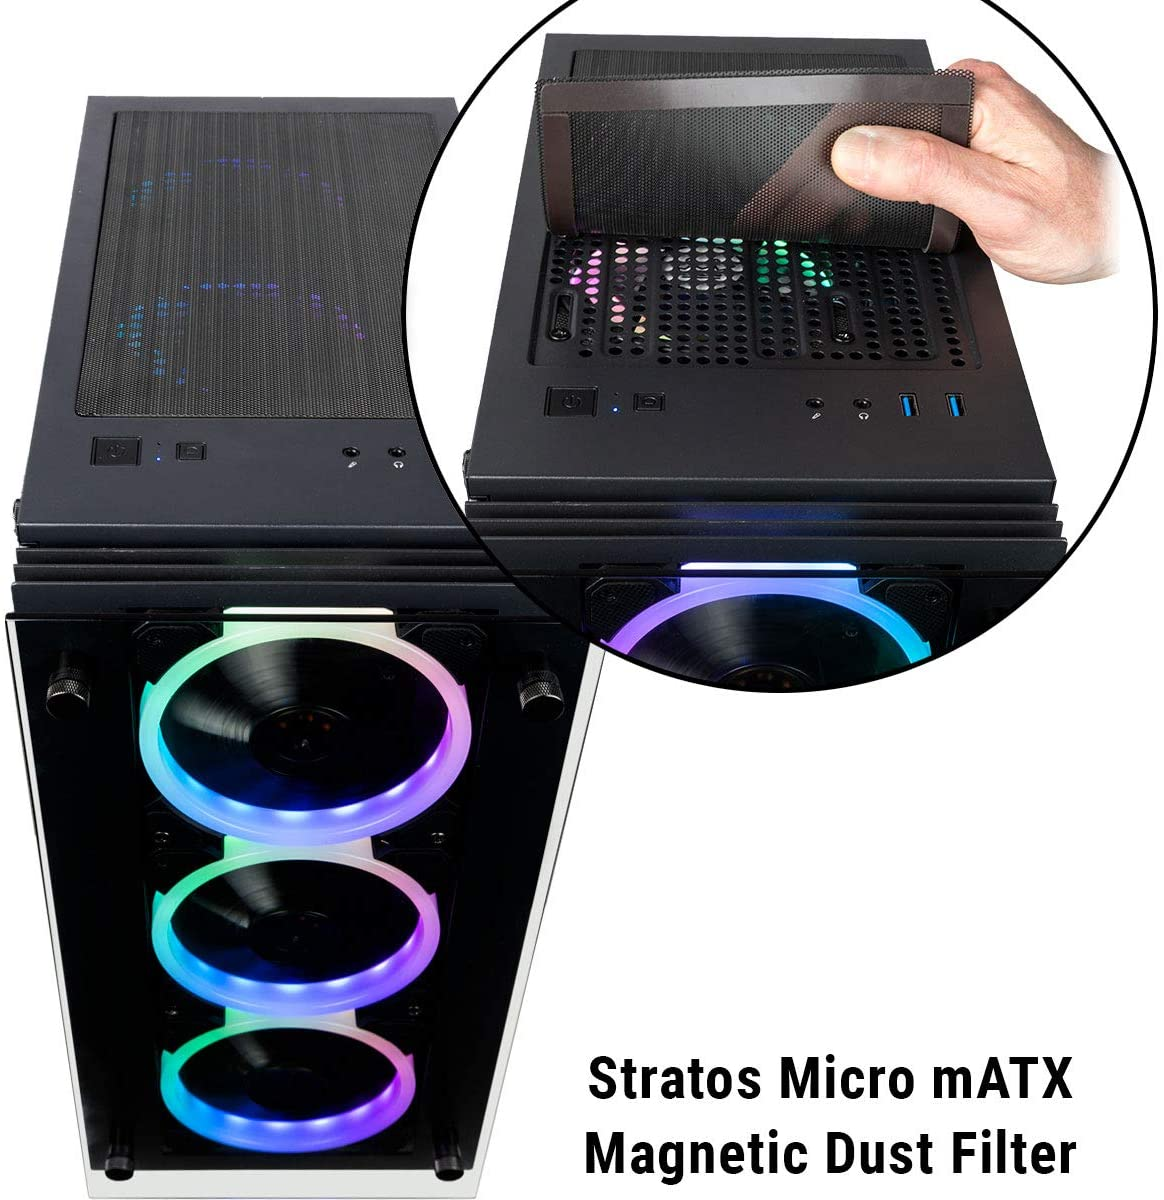 CUK Micro Continuum mATX Gaming Desktop Case with Tempered Glass Door 6 Addressable RGB Lotus Fans Pre-Installed, Remote Controller, Motherboard Sync